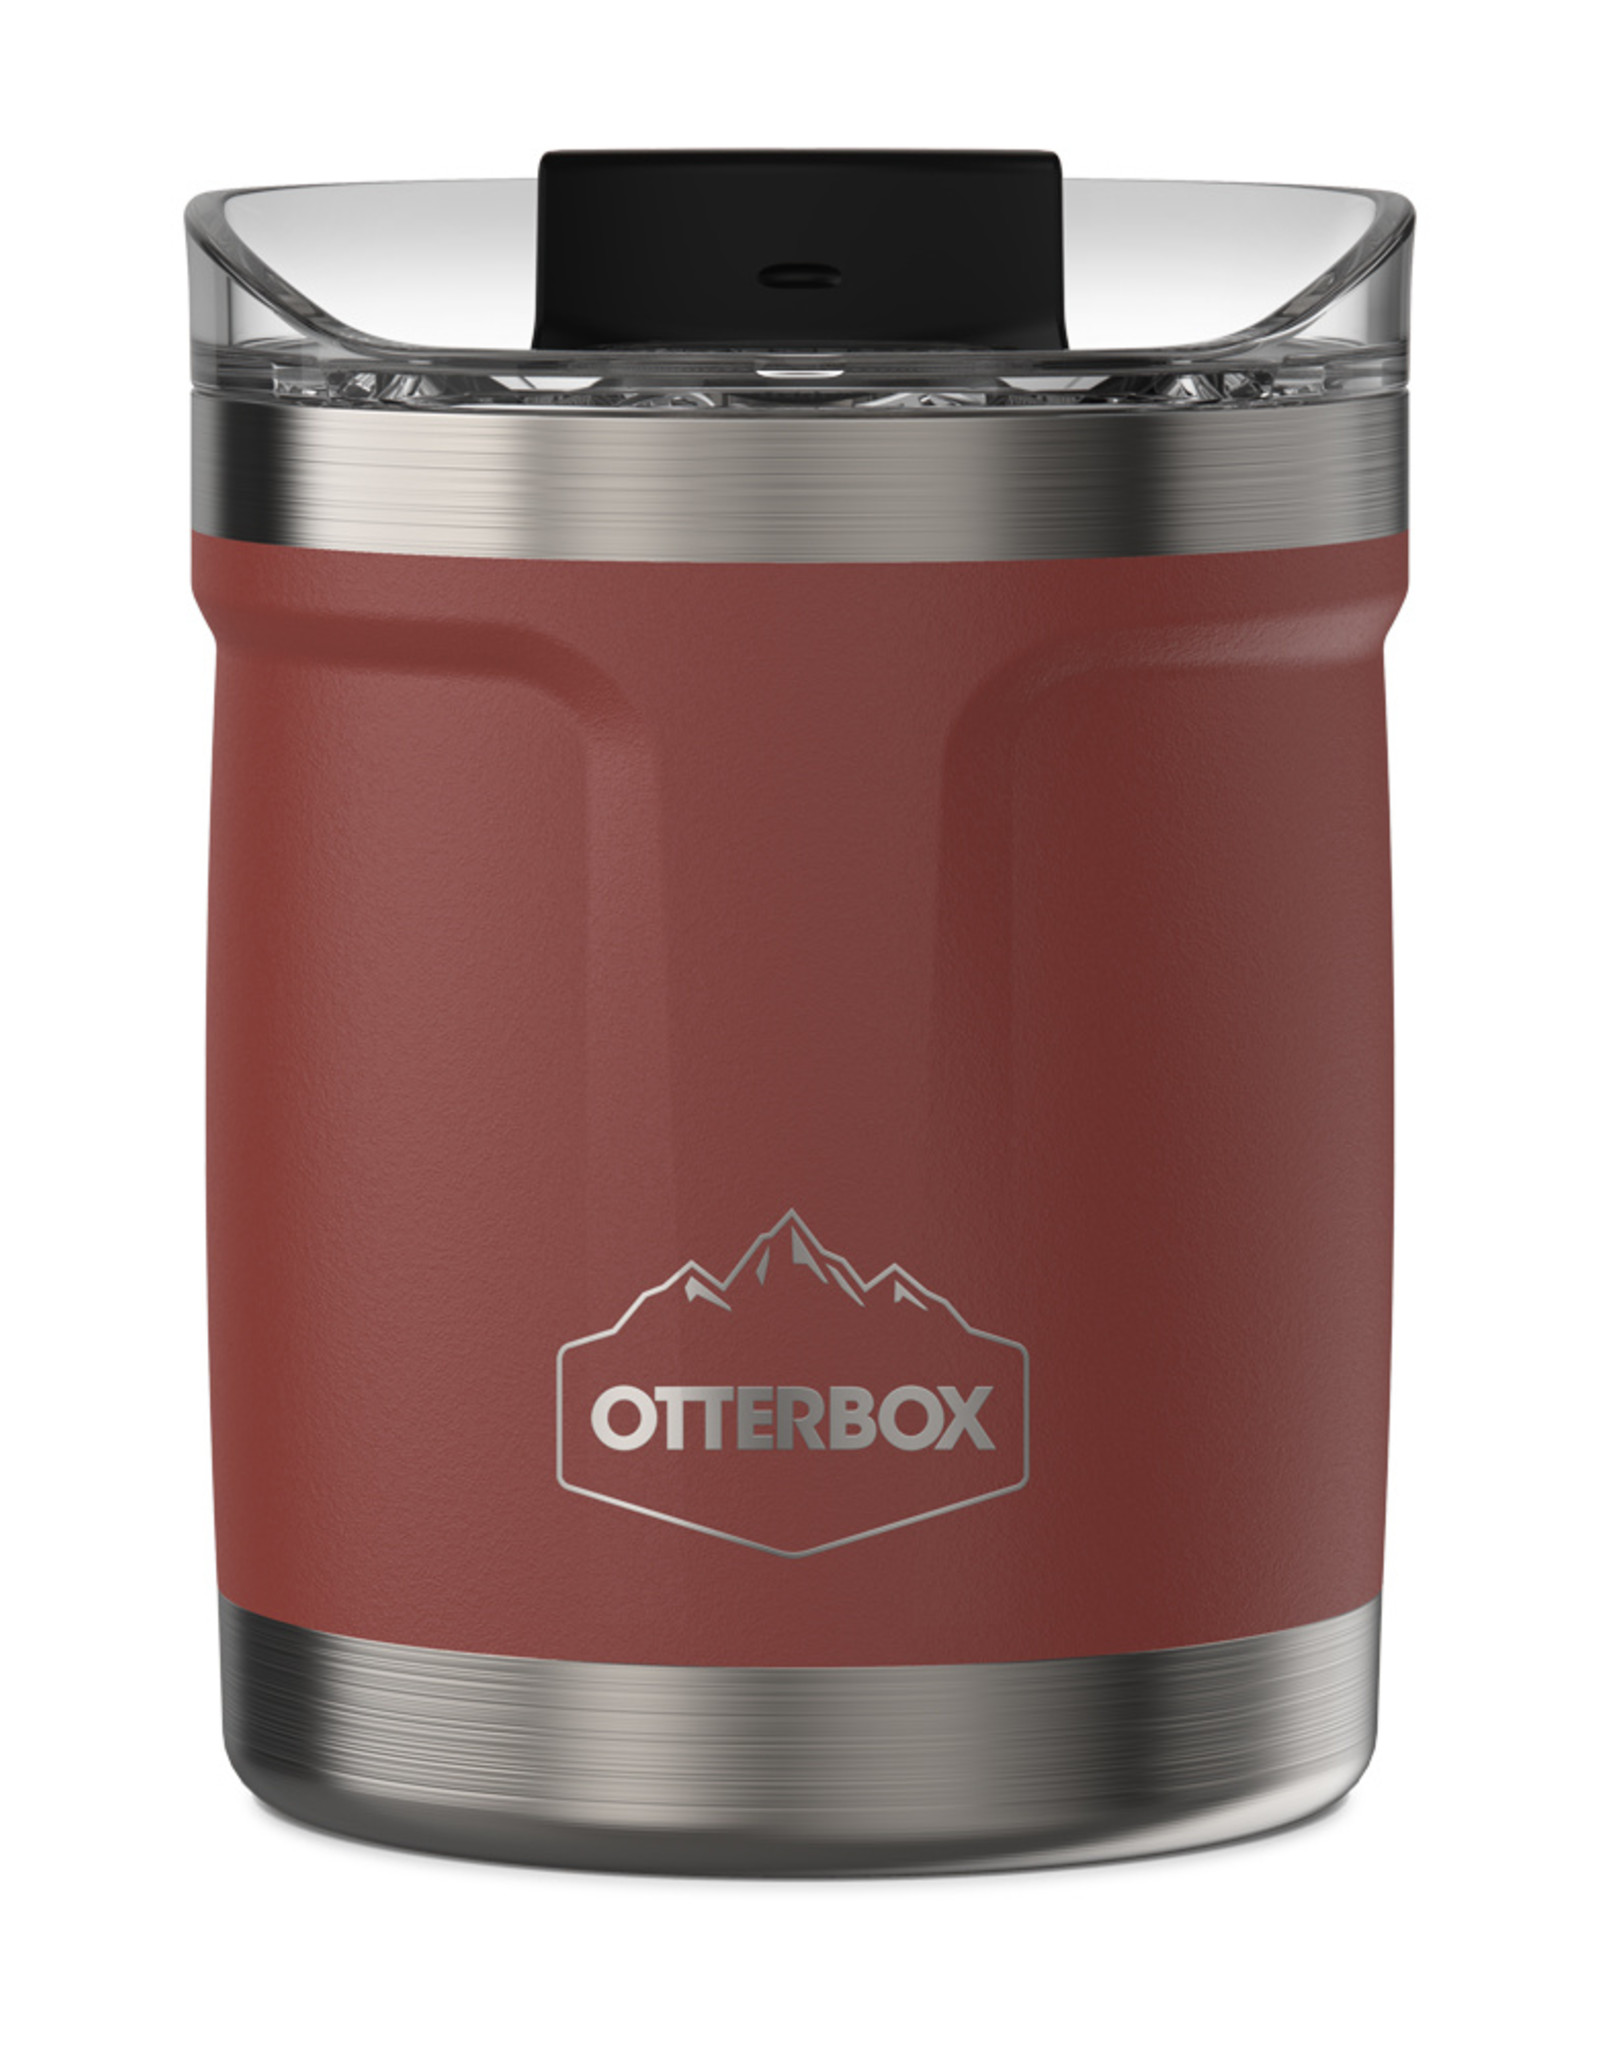 Otterbox Otterbox - Elevation Tumbler with Closed Lid 10 OZ Baked Mud (Stainless Steel/Baked Brick) 102-0086